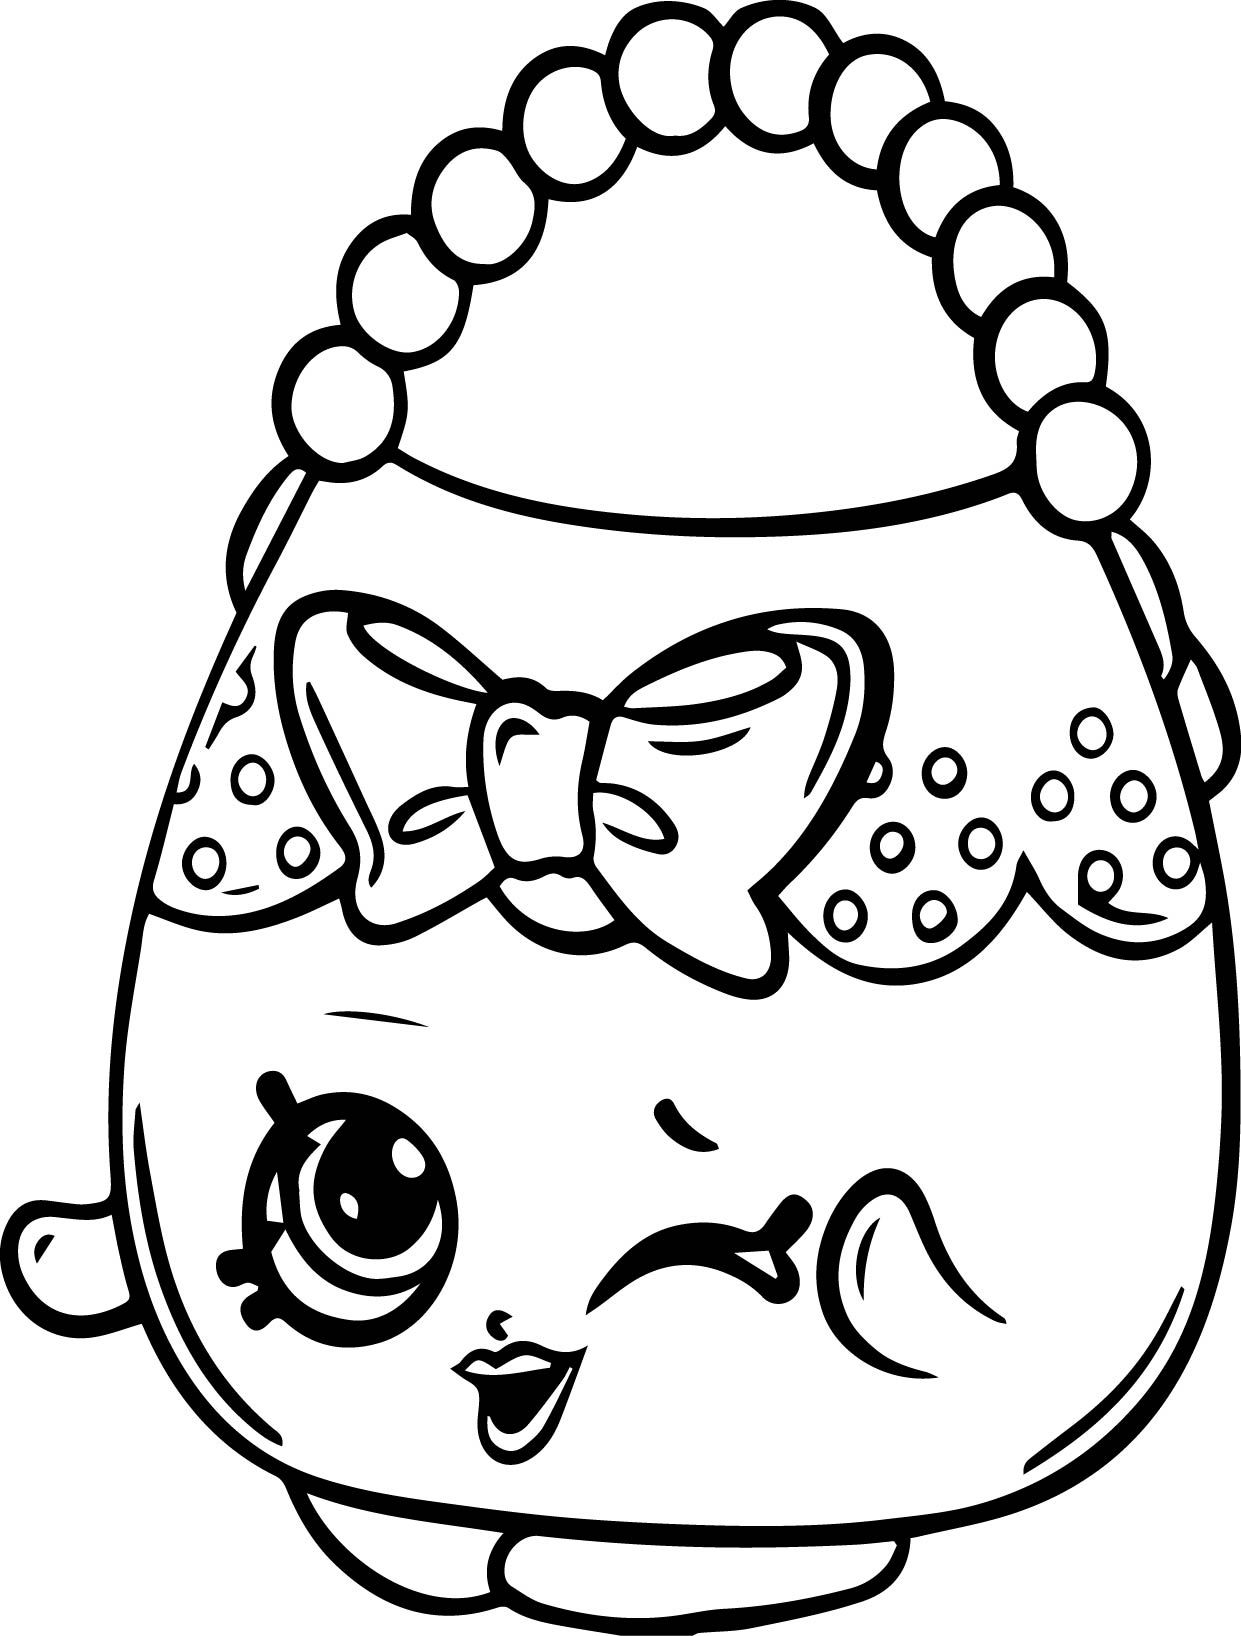 shopkins drawings www shopkins coloring pages at getdrawings free download drawings shopkins